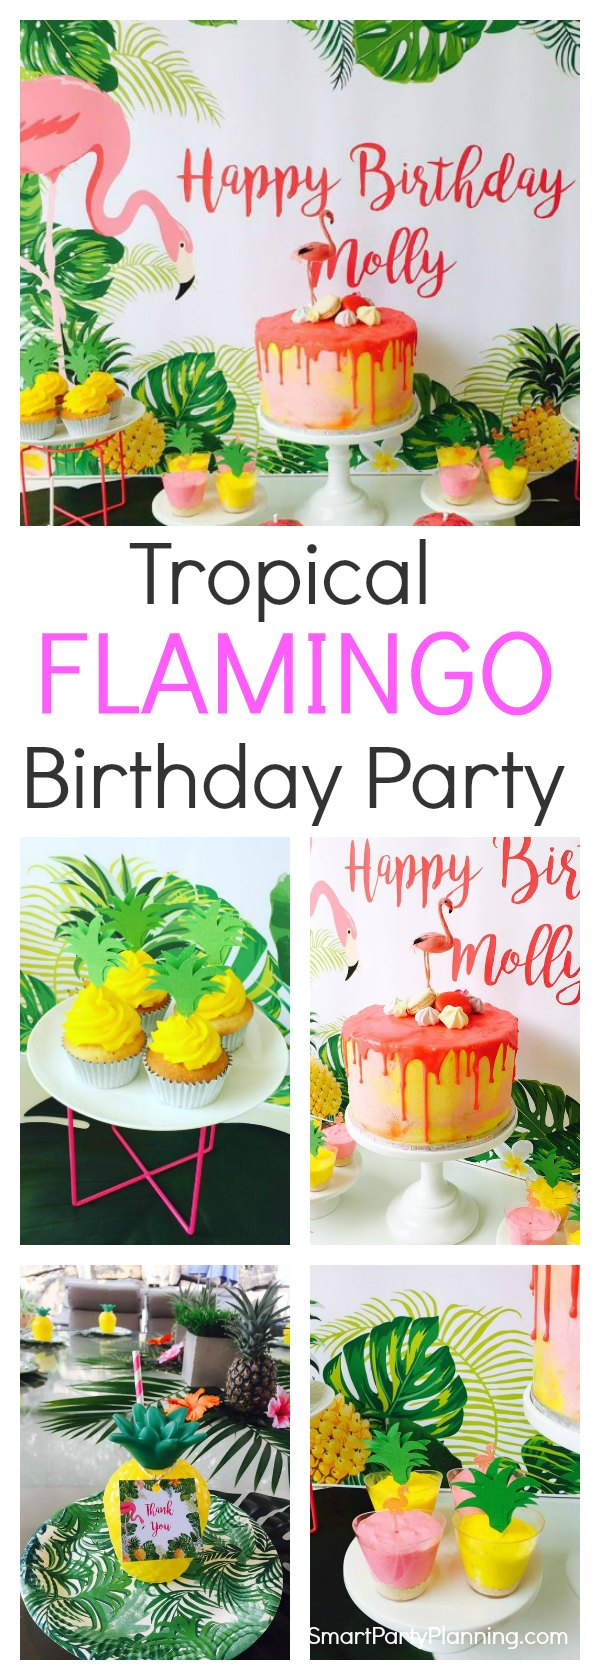 A gorgeous flamingo birthday partythat will provide you with plenty of ideas to hold your own. This is one that the kids will love. Showcasing a stunning cake, delicious food and eye popping decorations. This is a party theme that will really stand out from the crowd.